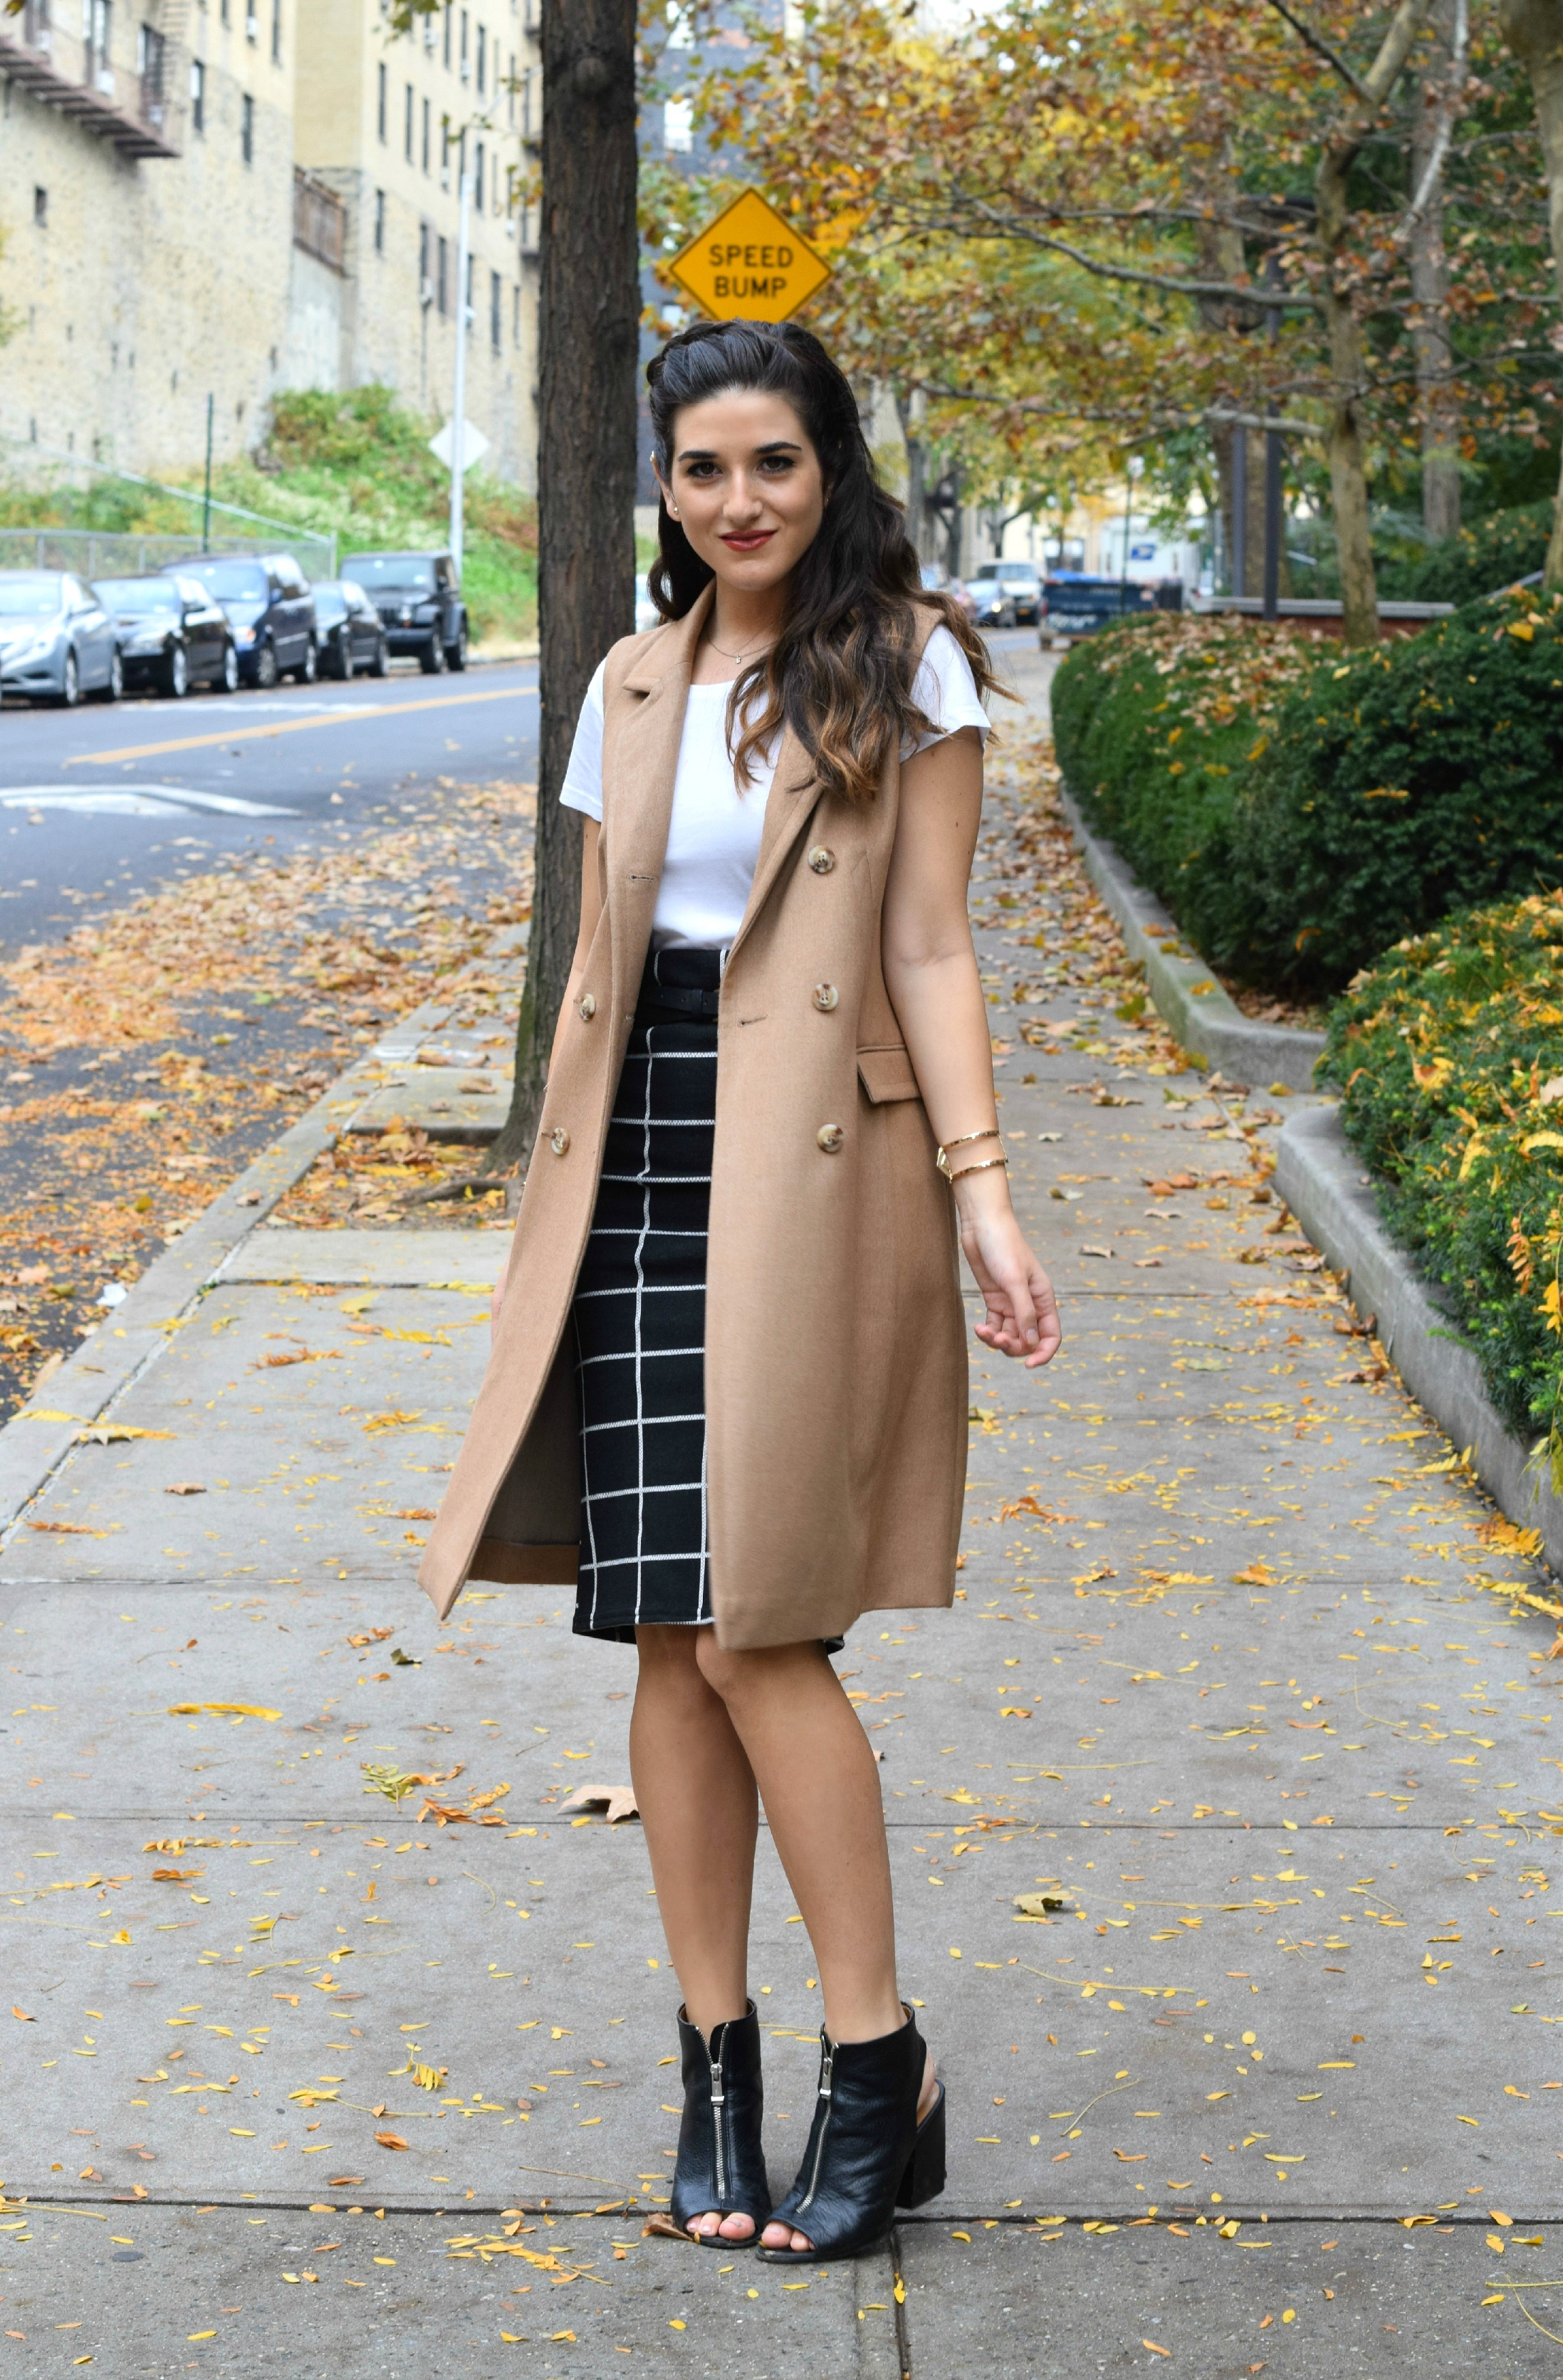 Sleeveless Coat Windowpane Skirt Oasis Louboutins & Love Fashion Blog Esther Santer NYC Street Style Blogger Vest Braid Outfit OOTD Inspo Inspiration White Tee Windowpane Skirt Gold Jewelry Cuff Bracelet Shoes Black Booties Nordstrom Trendy Women Girl.jpg